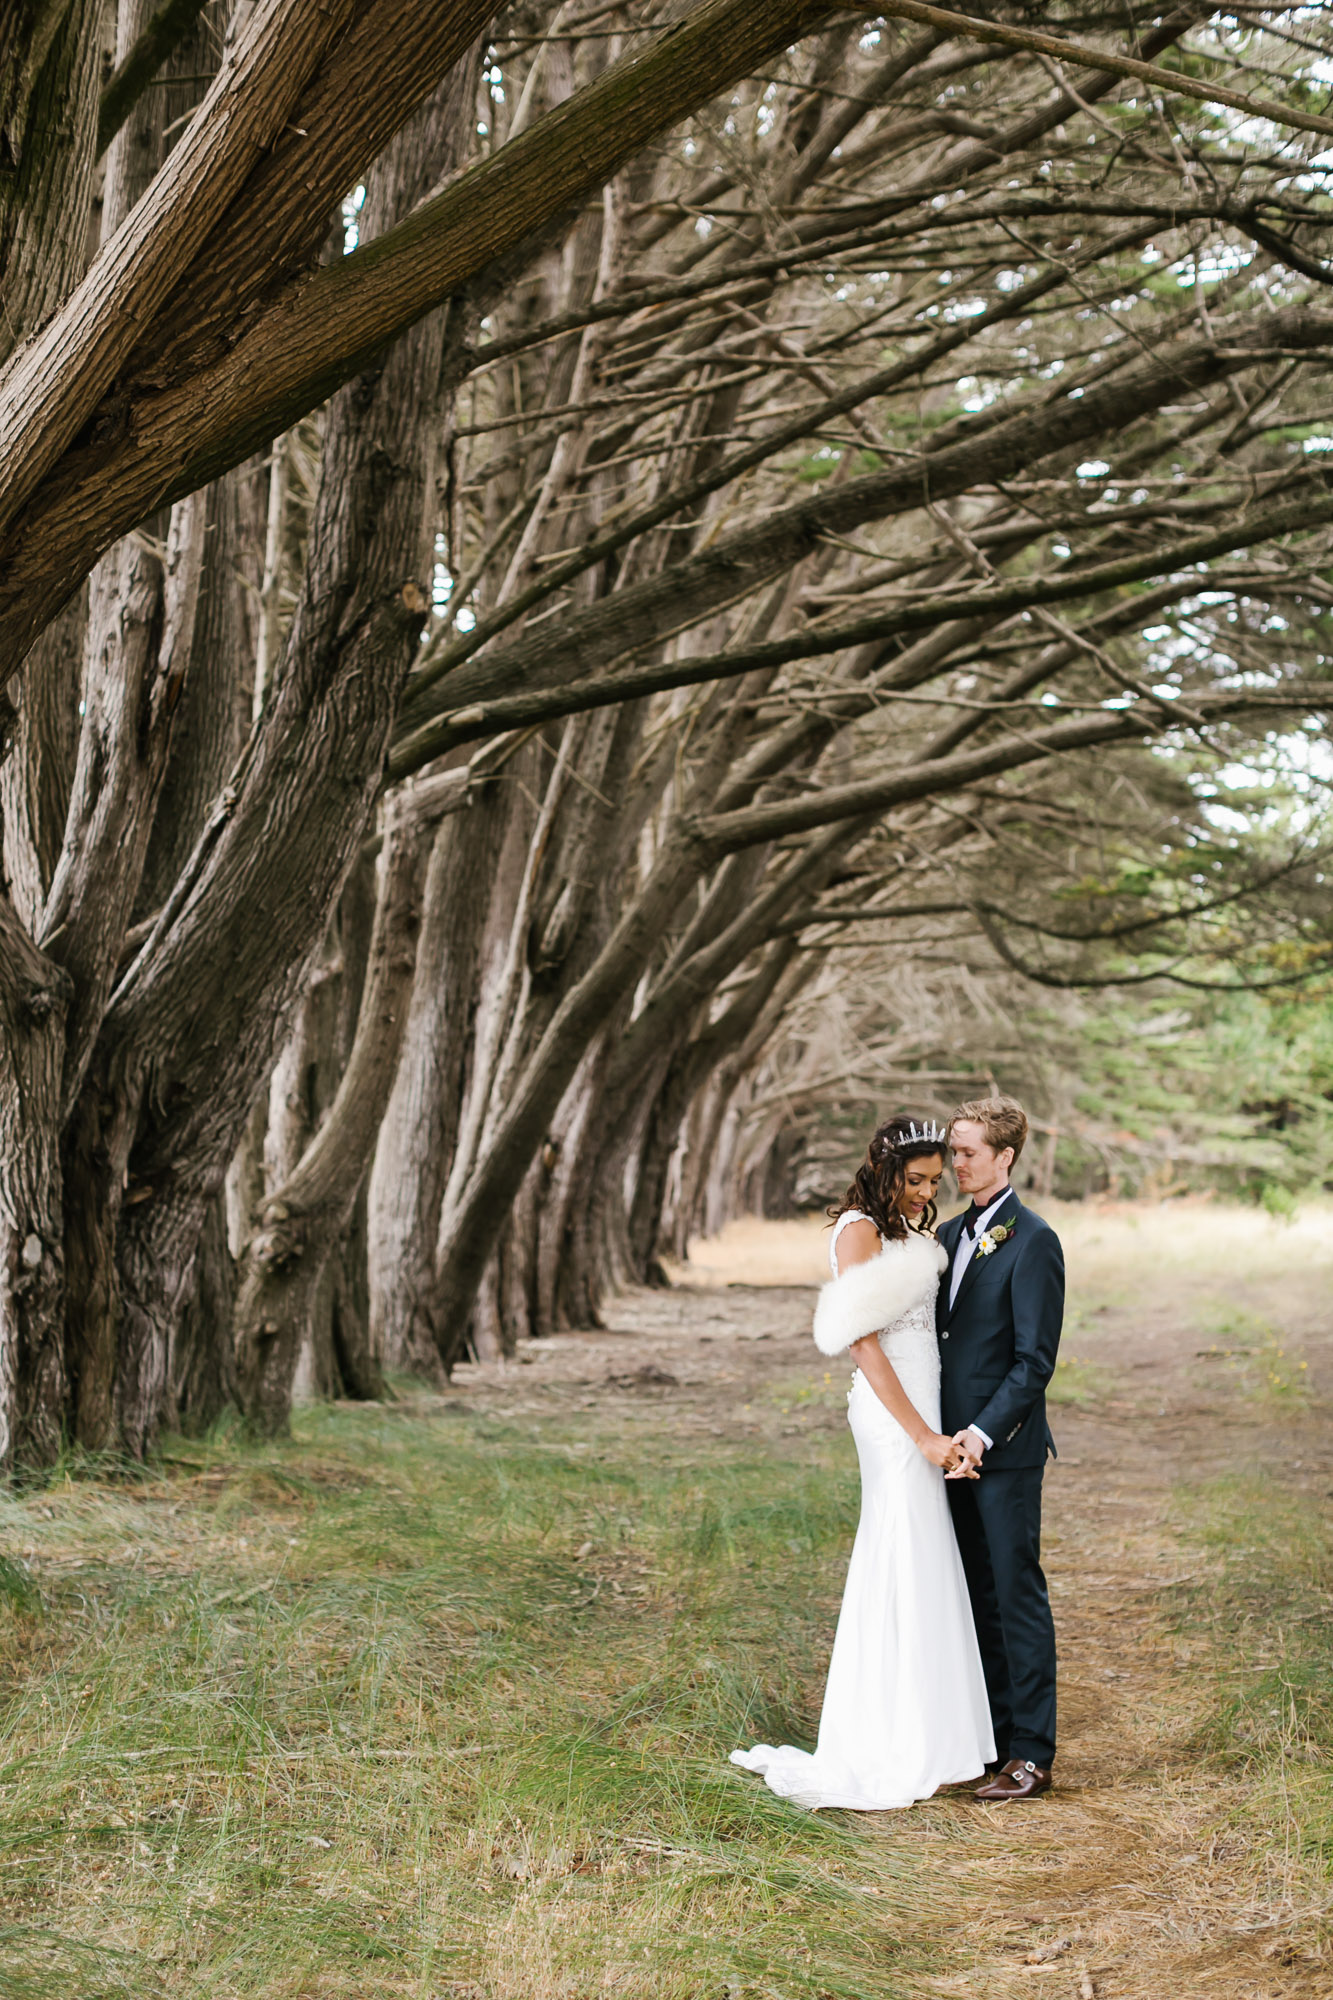 Bride wearing crystal crown stands with groom among coastal trees